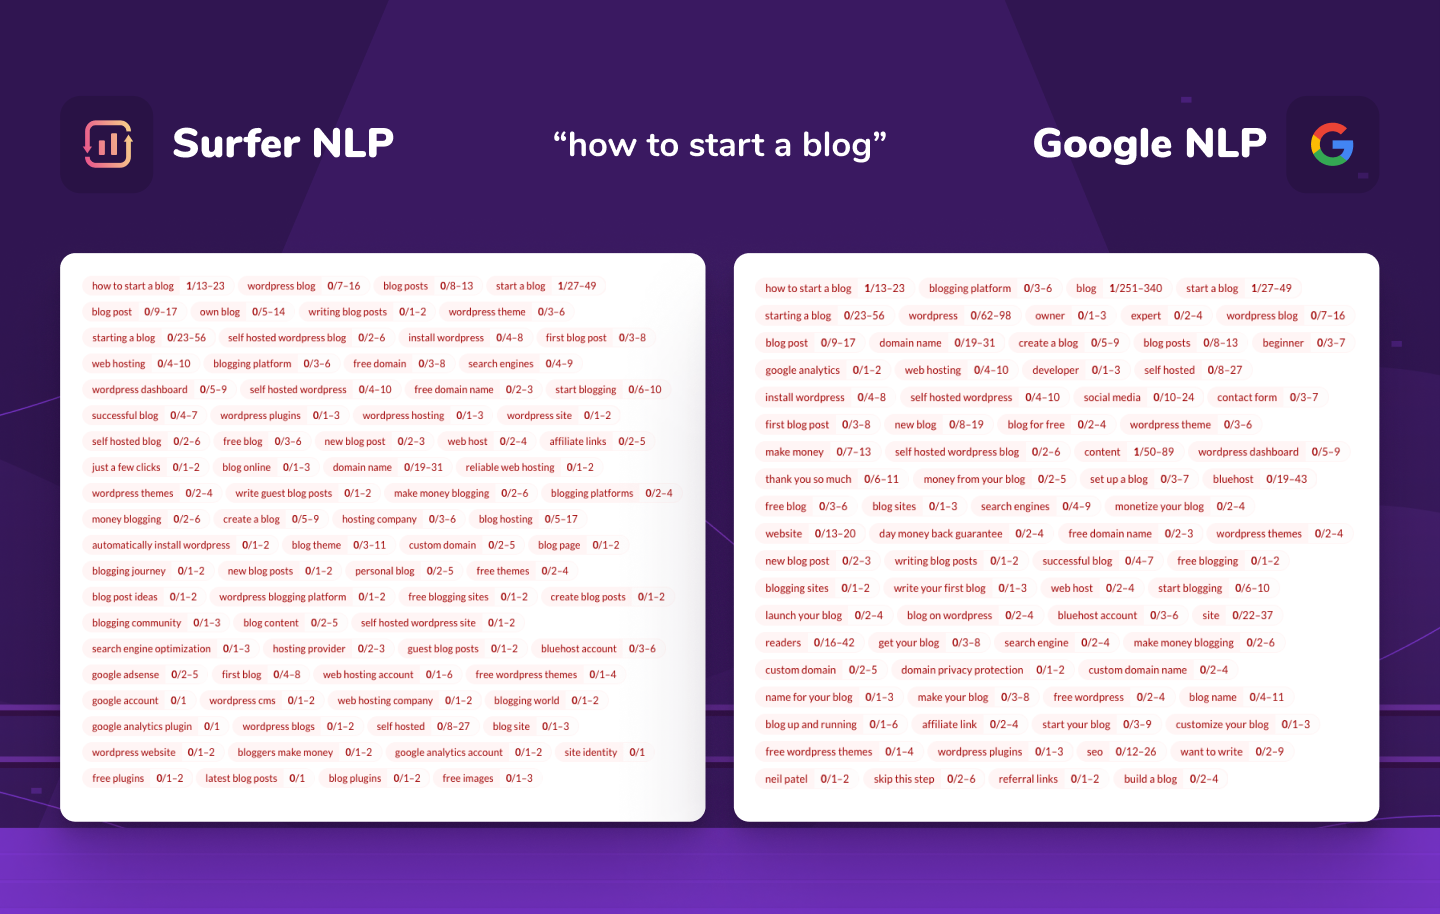 """comparison of Surfer NLP and Google NLP for """"how to start a blog"""" keyword"""